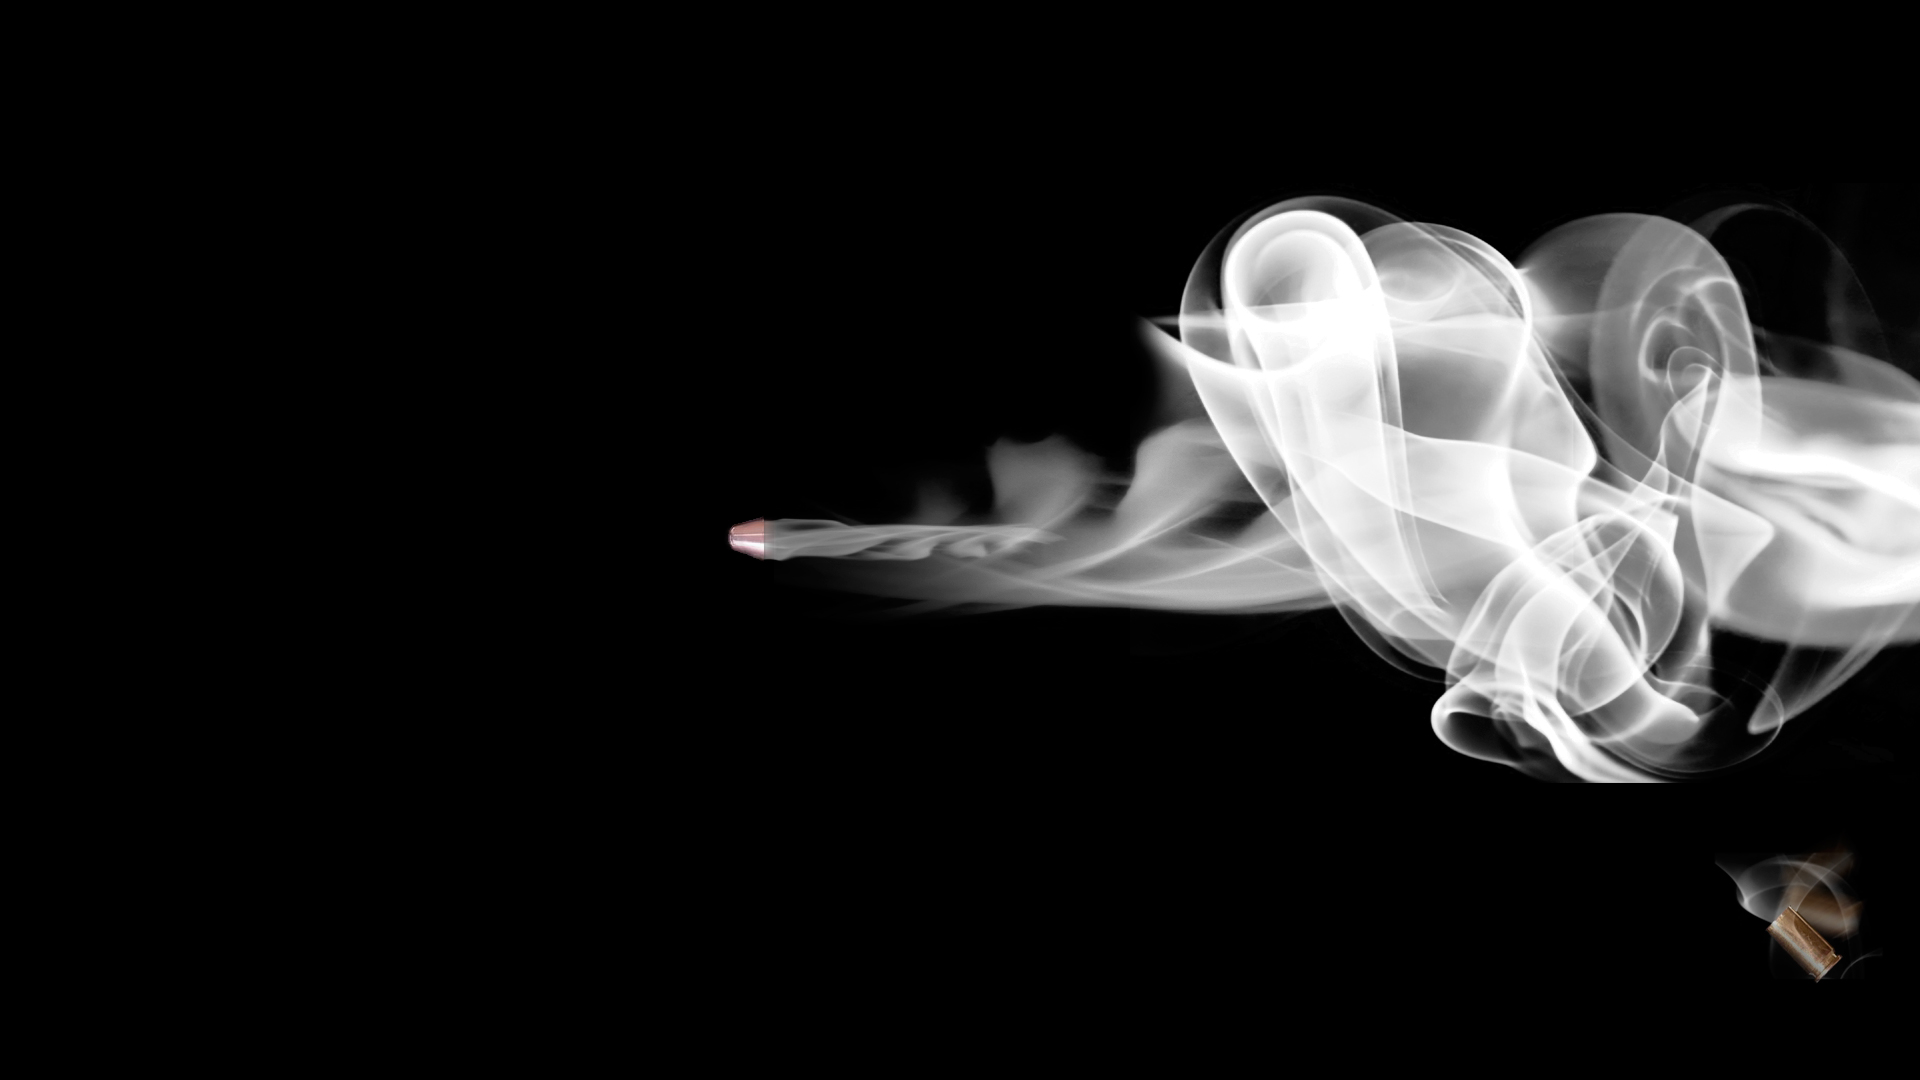 wincustomize explore wallpapers bullet amp smoke black